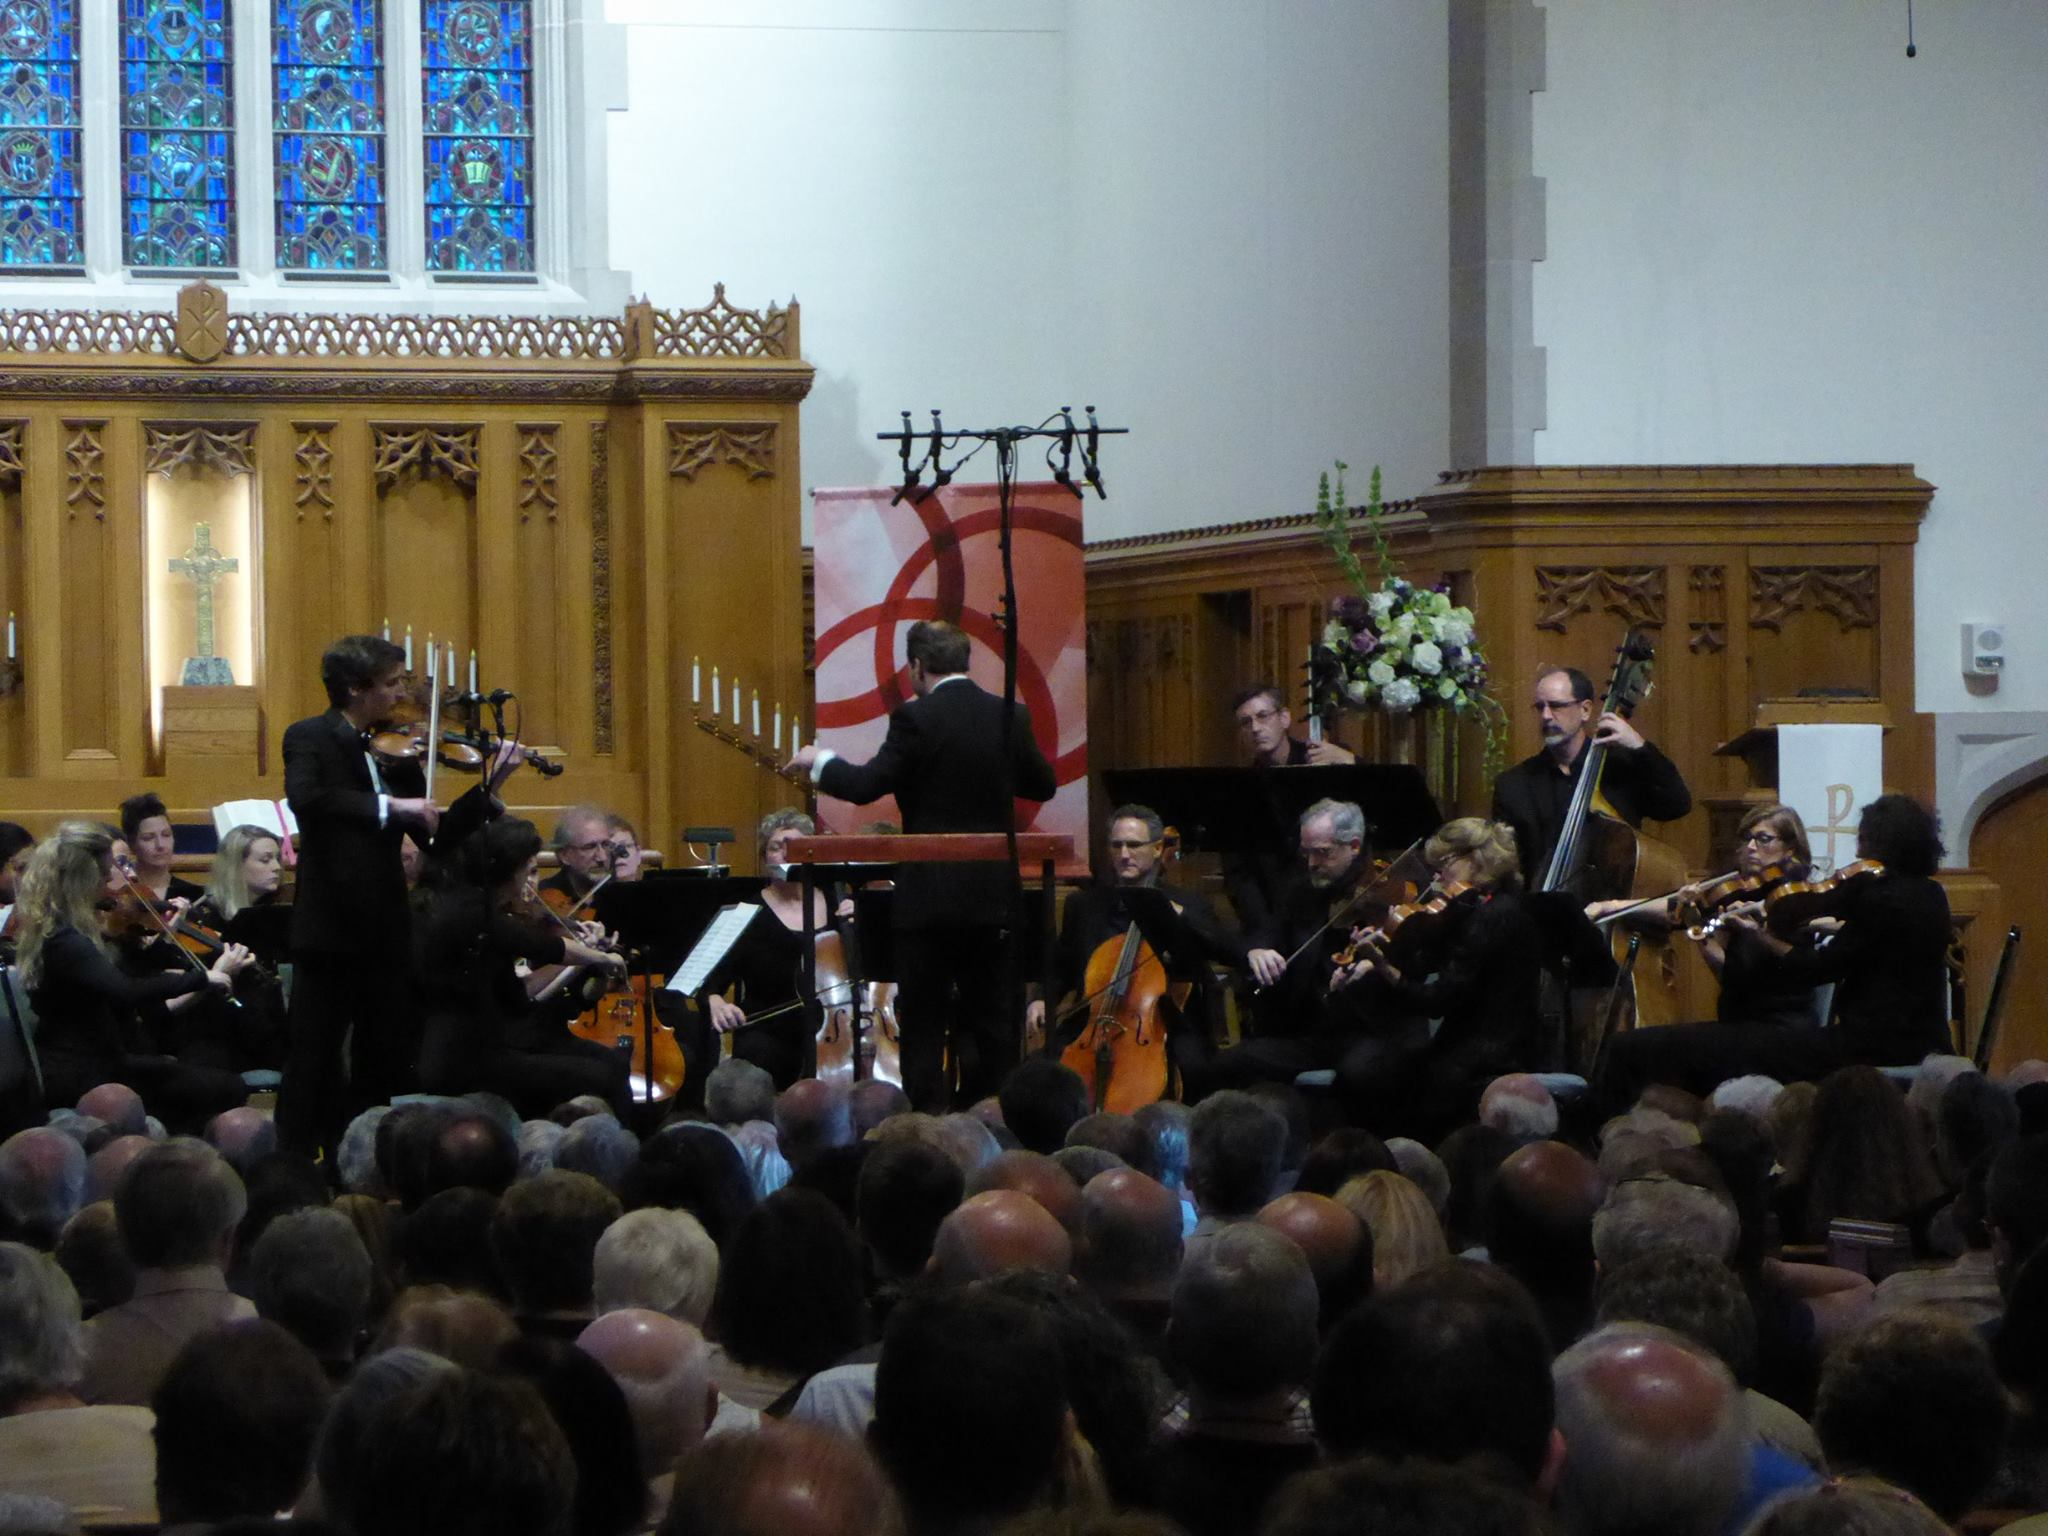 ProMusica Chamber Orchestra